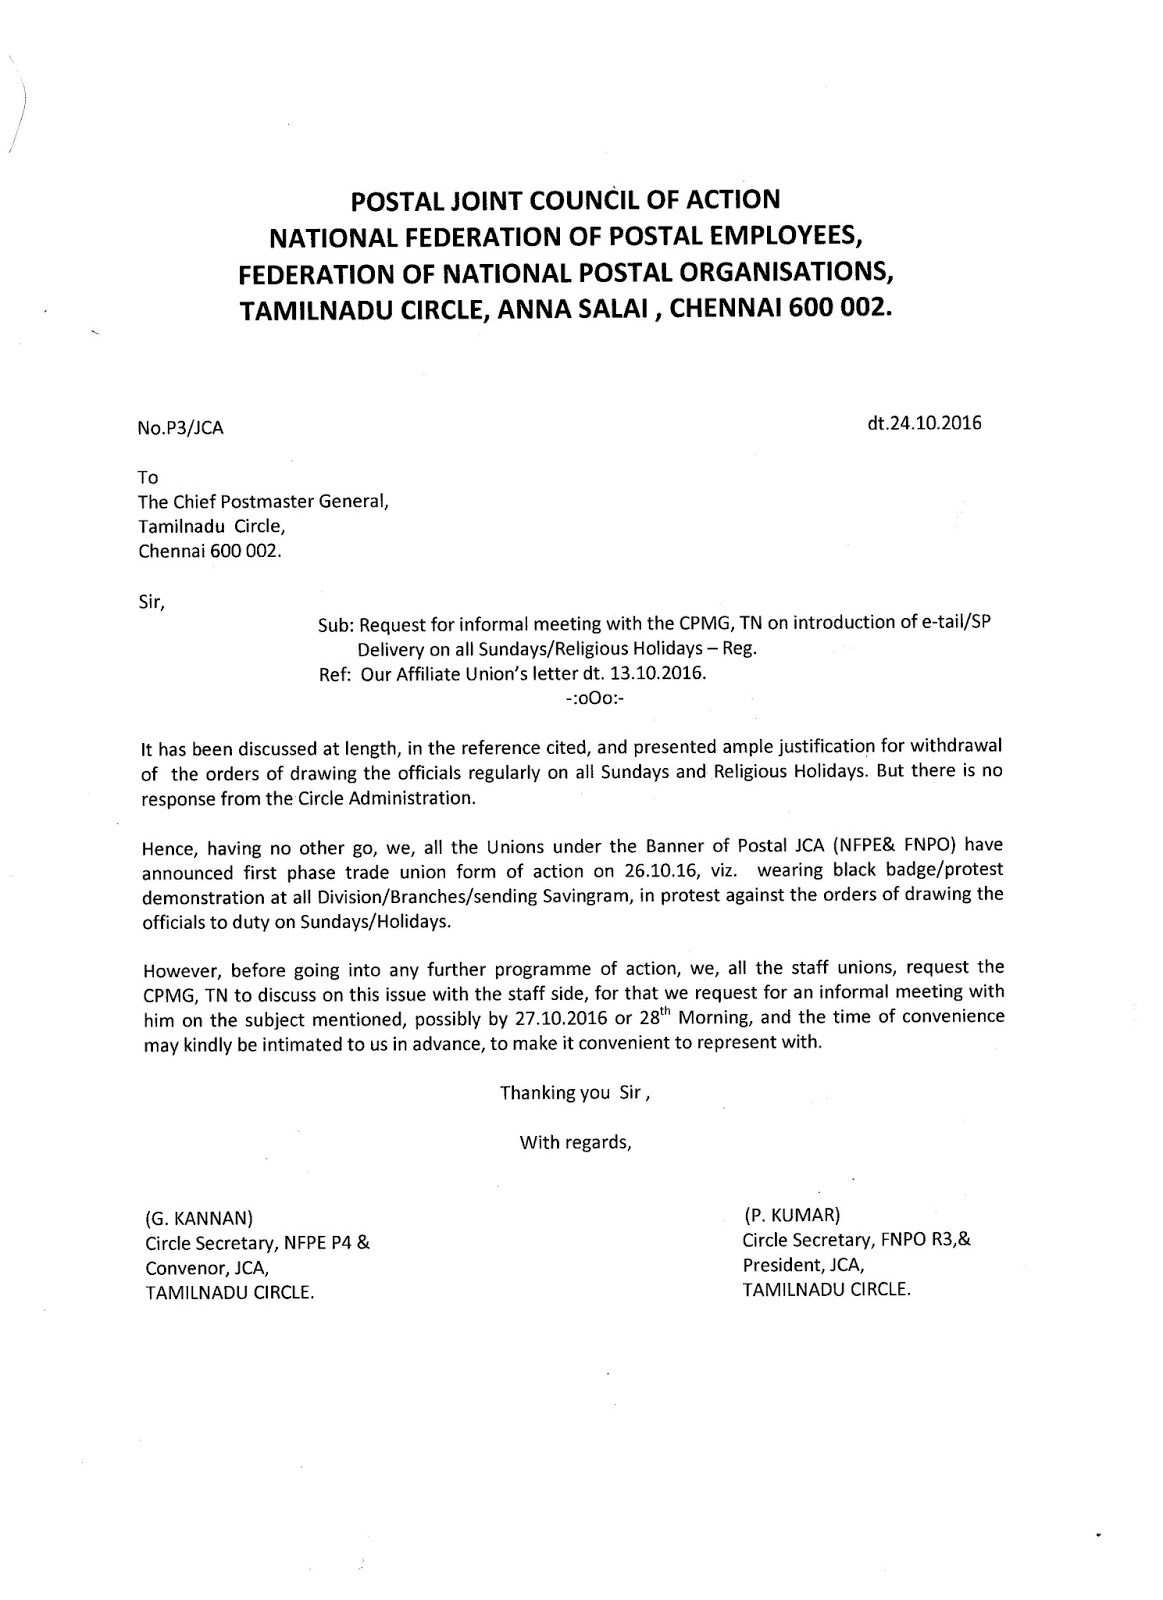 Tn jca letter to chief pmg tn seeking informal meeting with him on tn jca letter to chief pmg tn seeking informal meeting with him on sunday holiday delivery duty cpmg at kerala circle in additional charge kristyandbryce Image collections